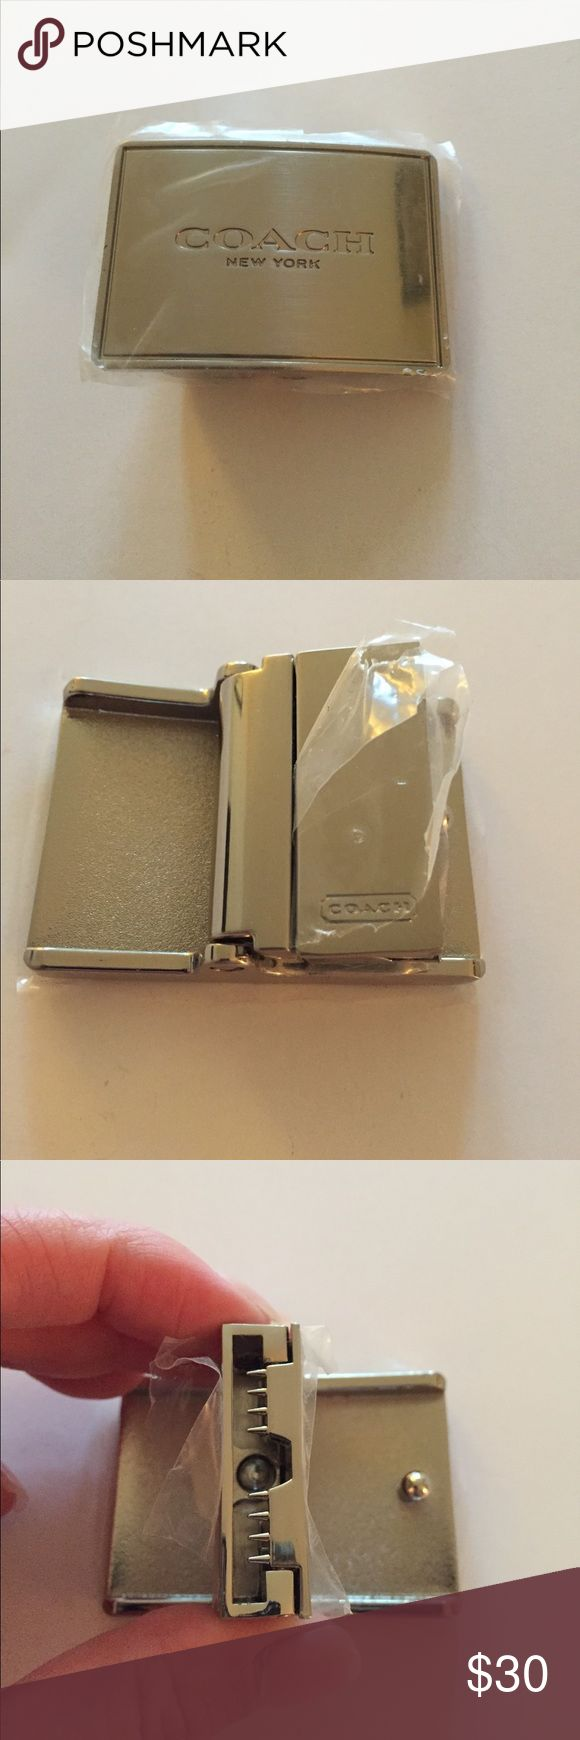 Coach Belt Buckle Only Brand new men's Coach Belt Buckle. Can be attached to any leather belt that accepts changing out the buckle. Coach Accessories Belts